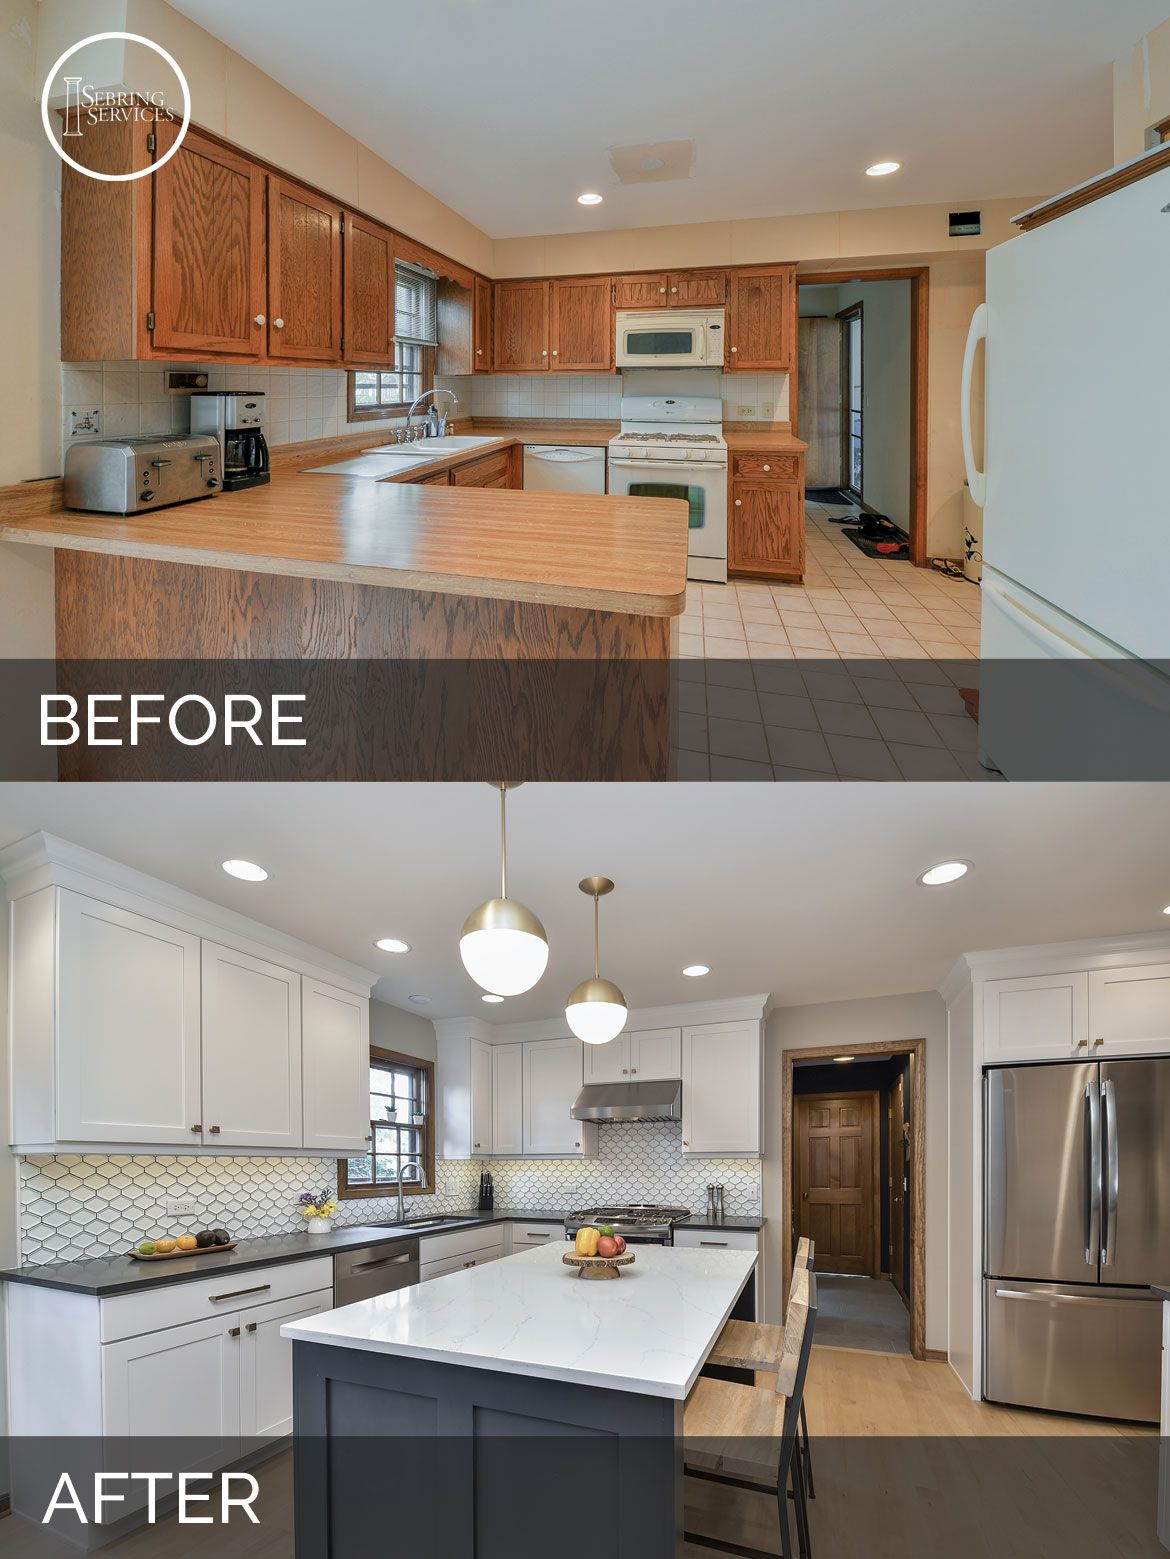 Captivating Before And After Kitchen Remodeling Naperville   Sebring Services Design